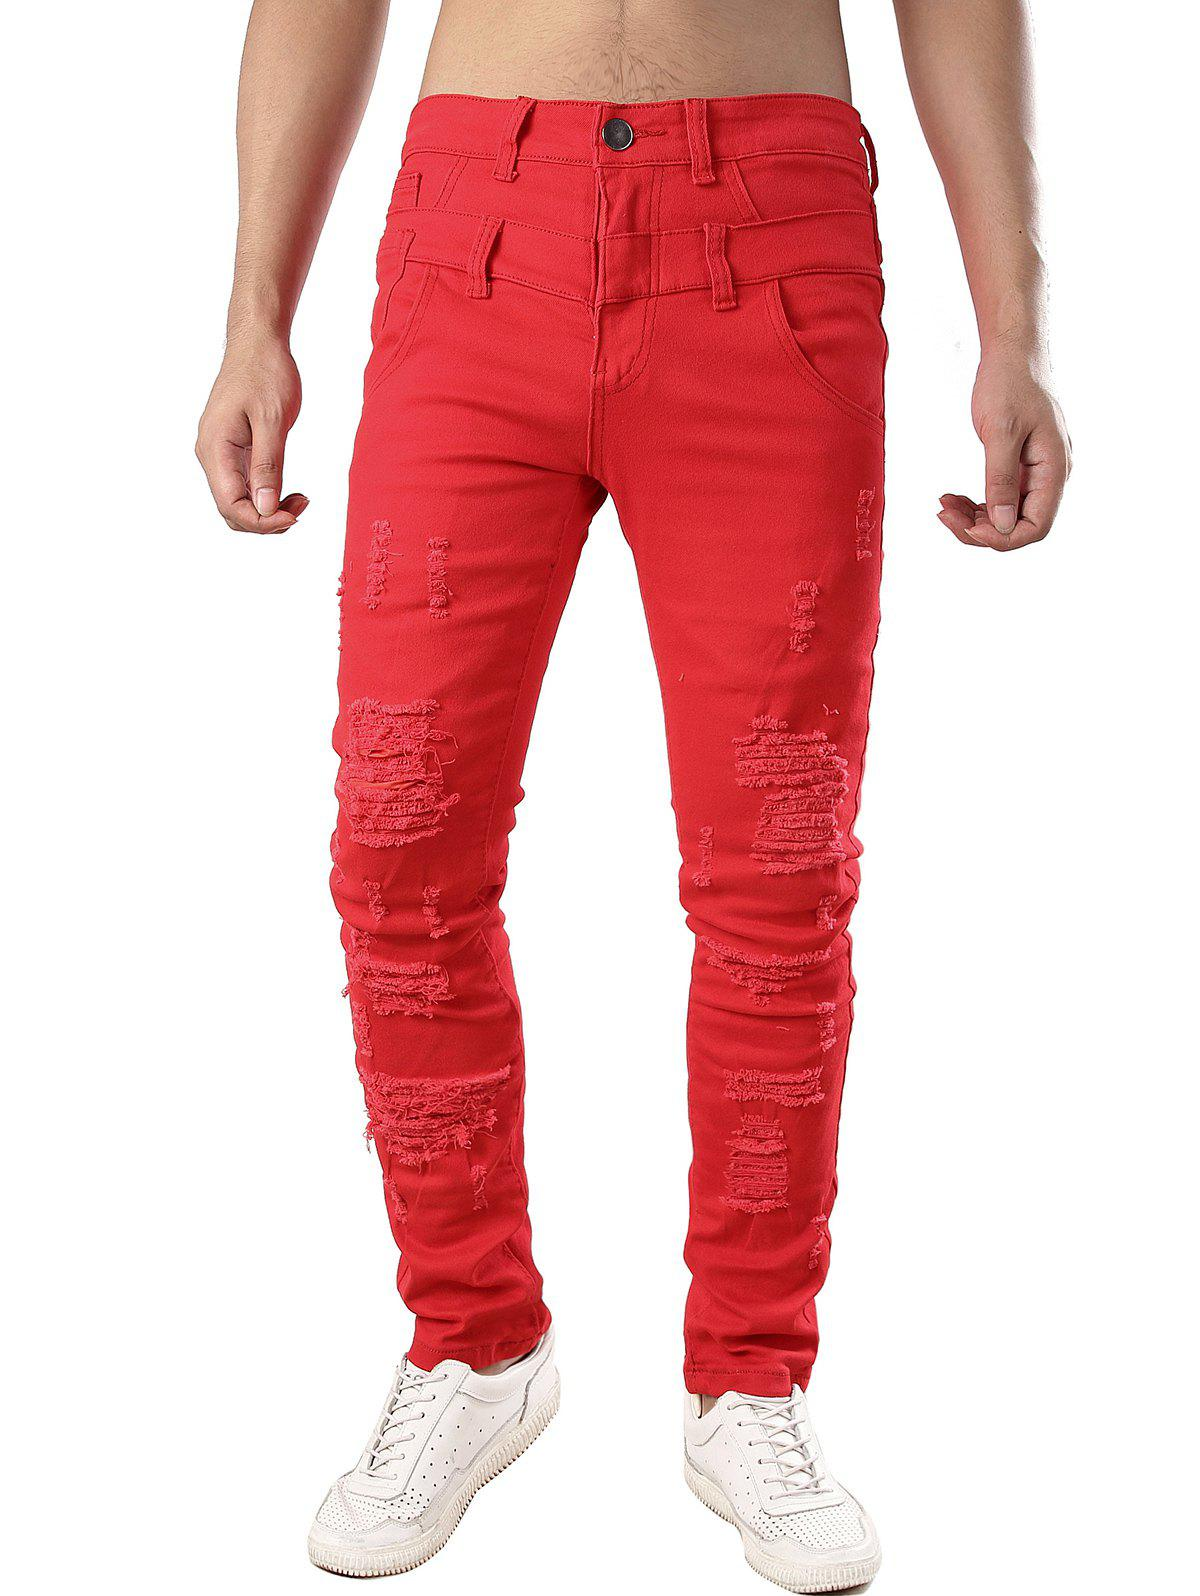 Zip Fly Design Casual Ripped Jeans - RED 40